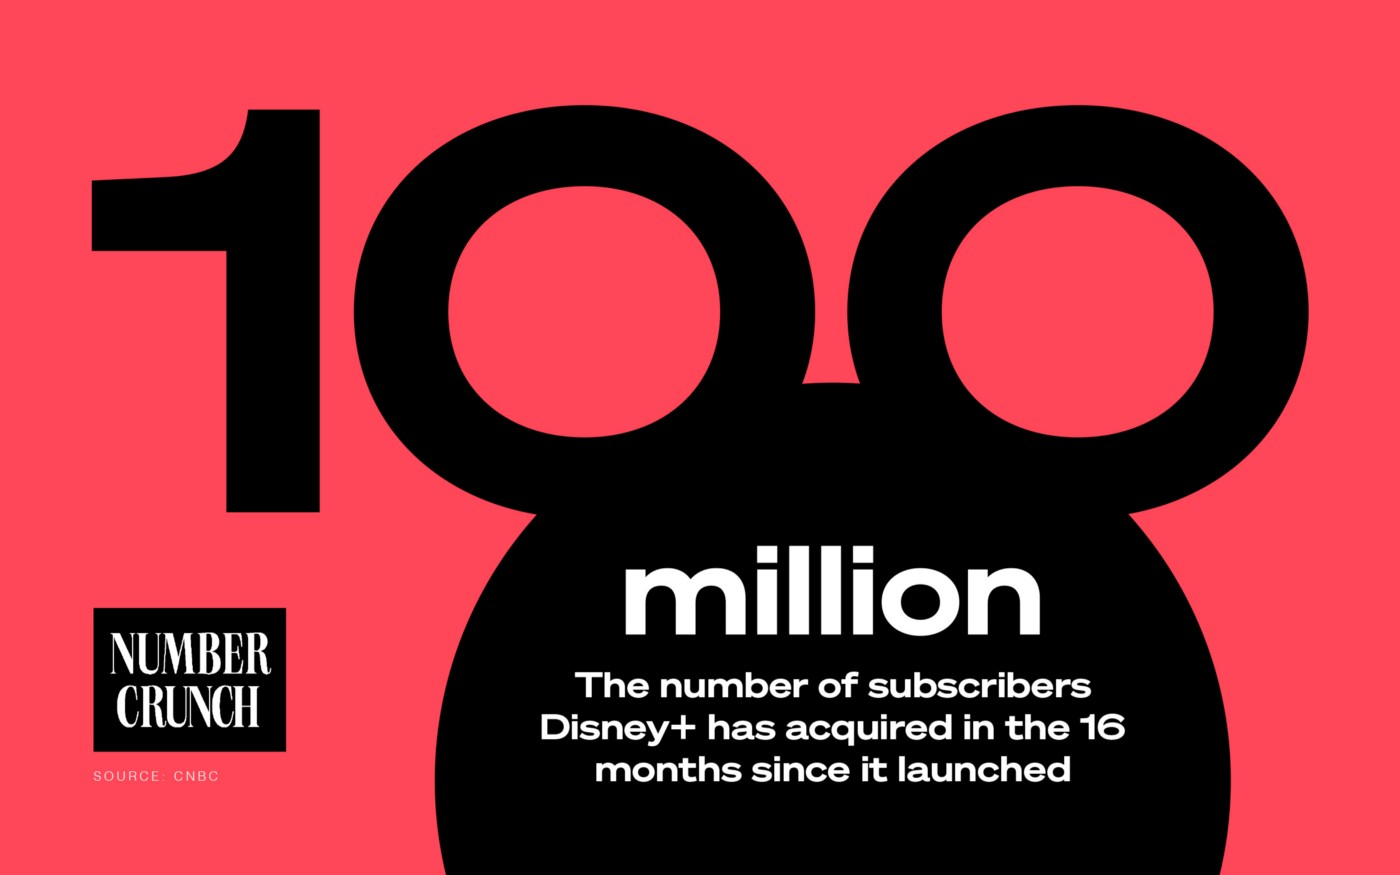 """100 million: The number of subscribers Disney+ has acquired in the 16 months since it launched Source: CNBC"" next to the ""Number Crunch"" logo. The ""00"" in the 100 million is placed above a black circle to look like mouse ears."